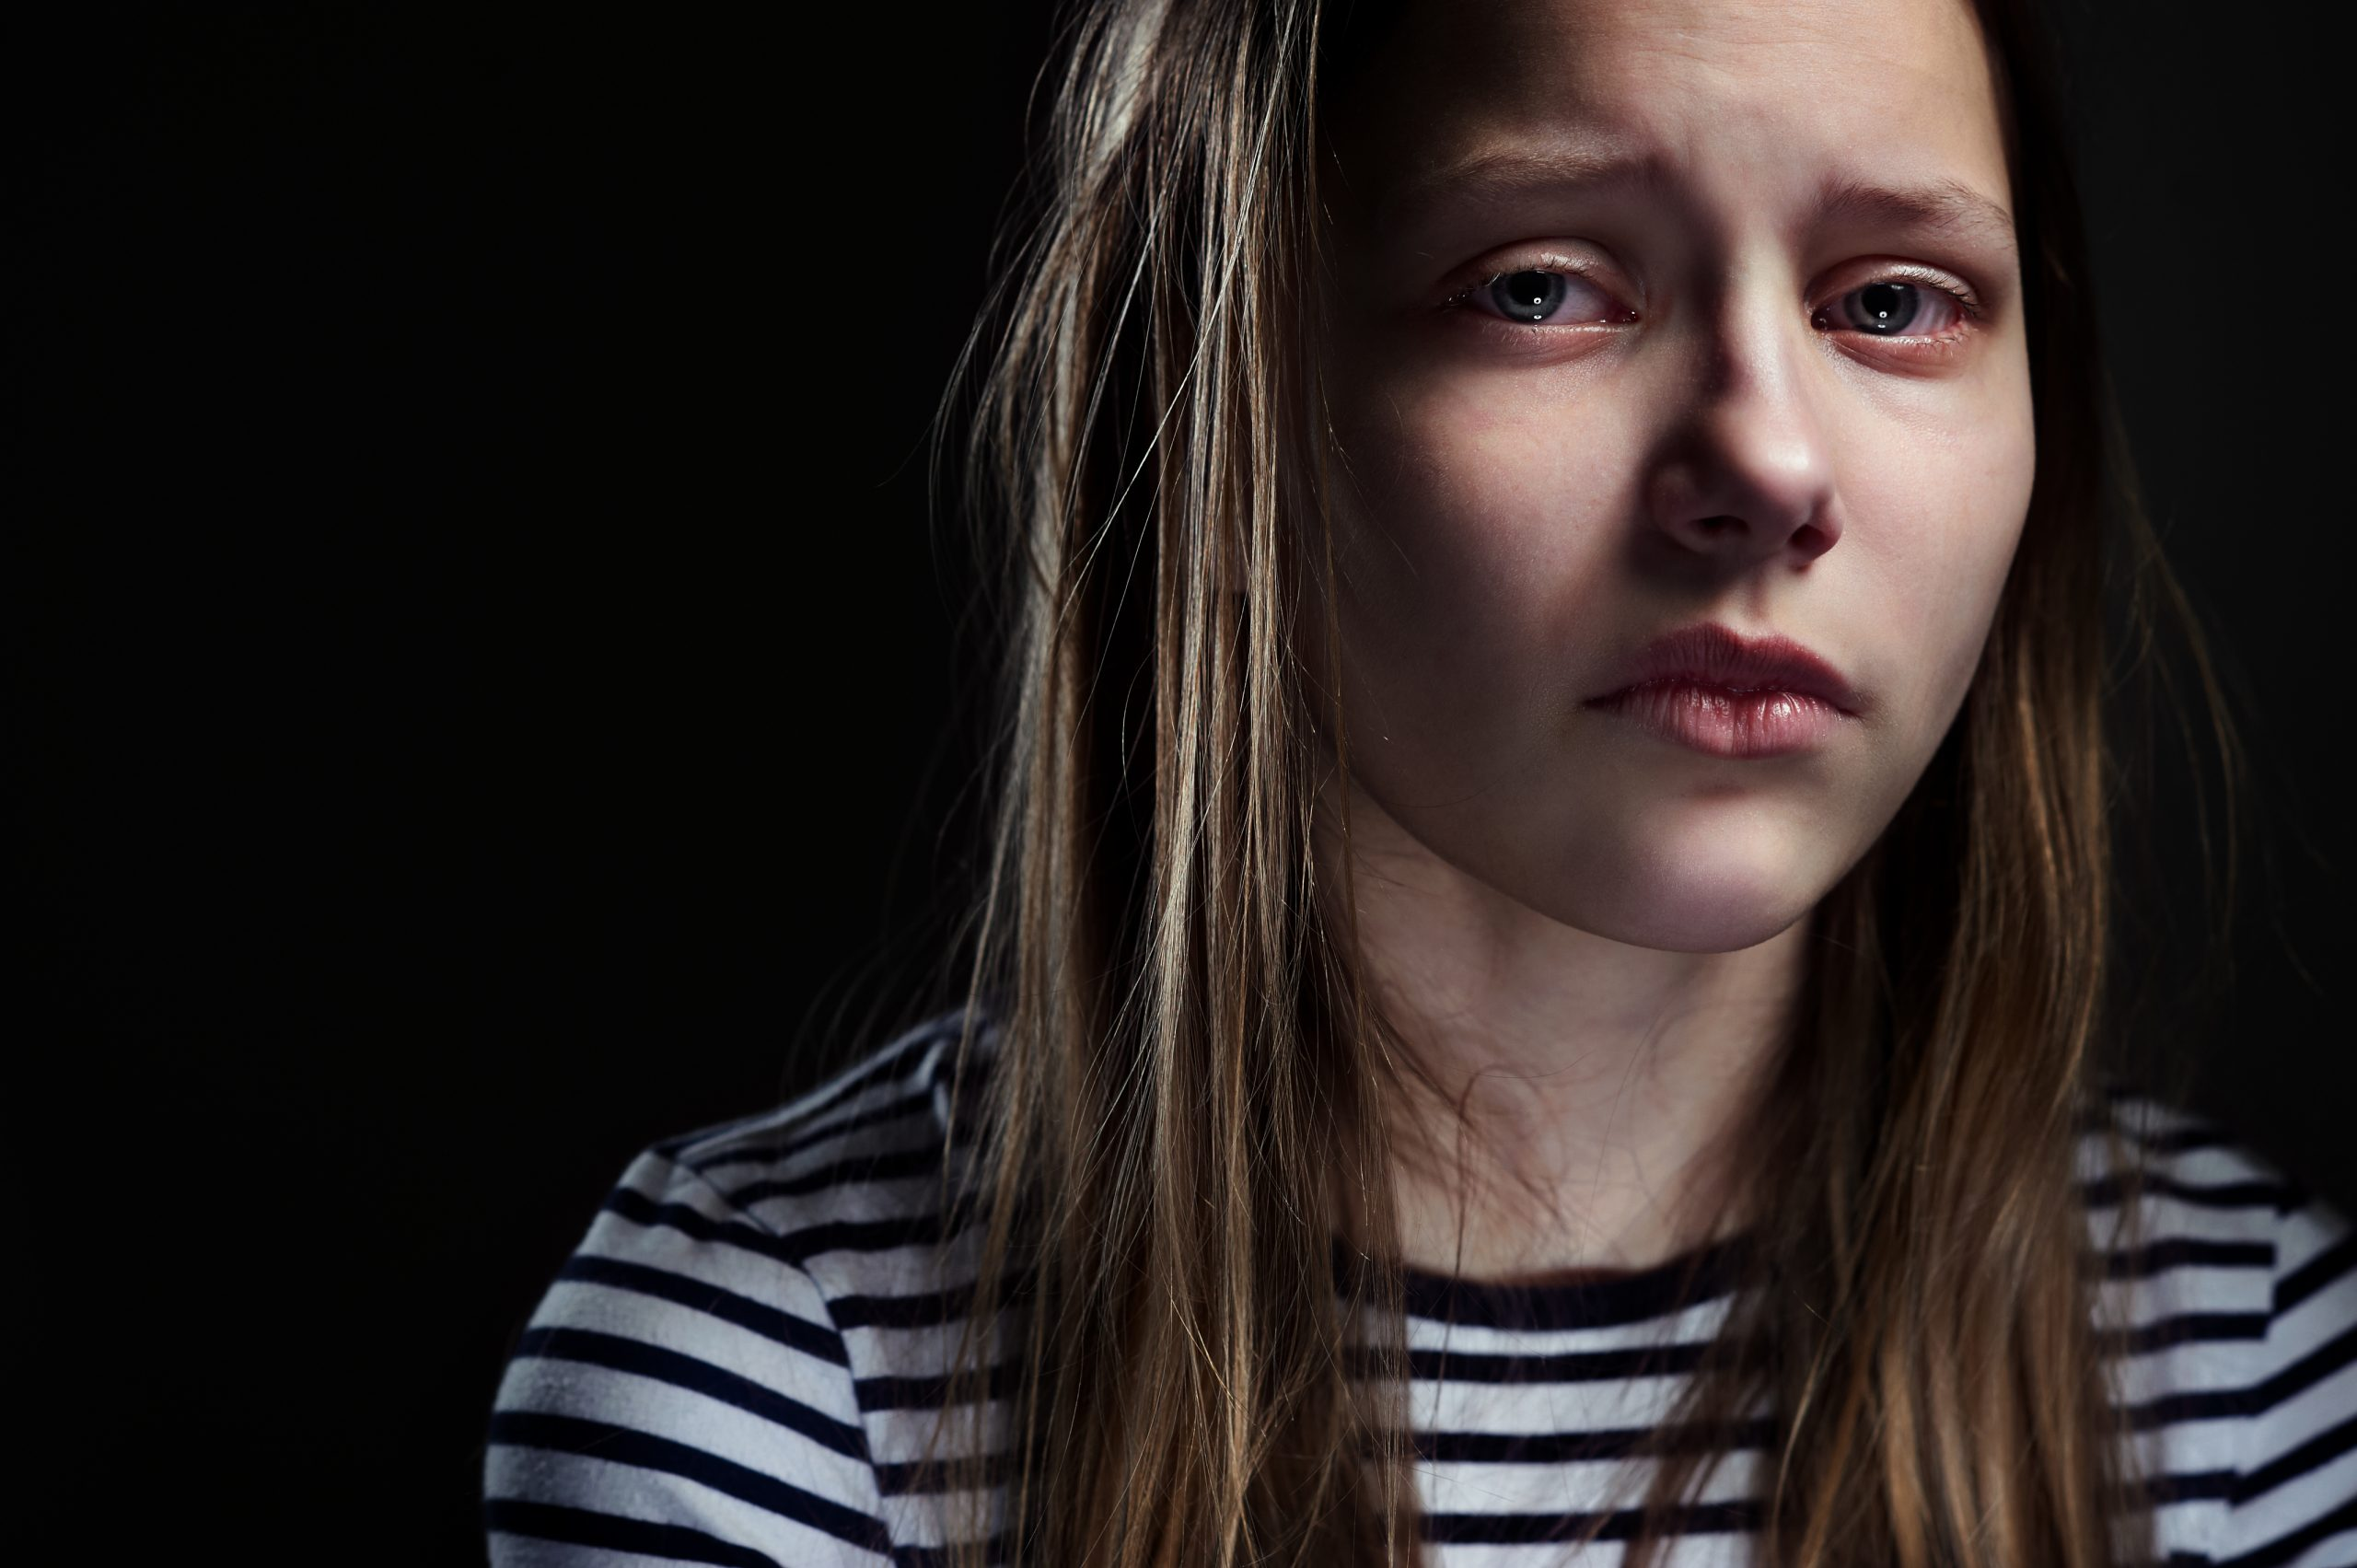 Photo of young woman looking sad.